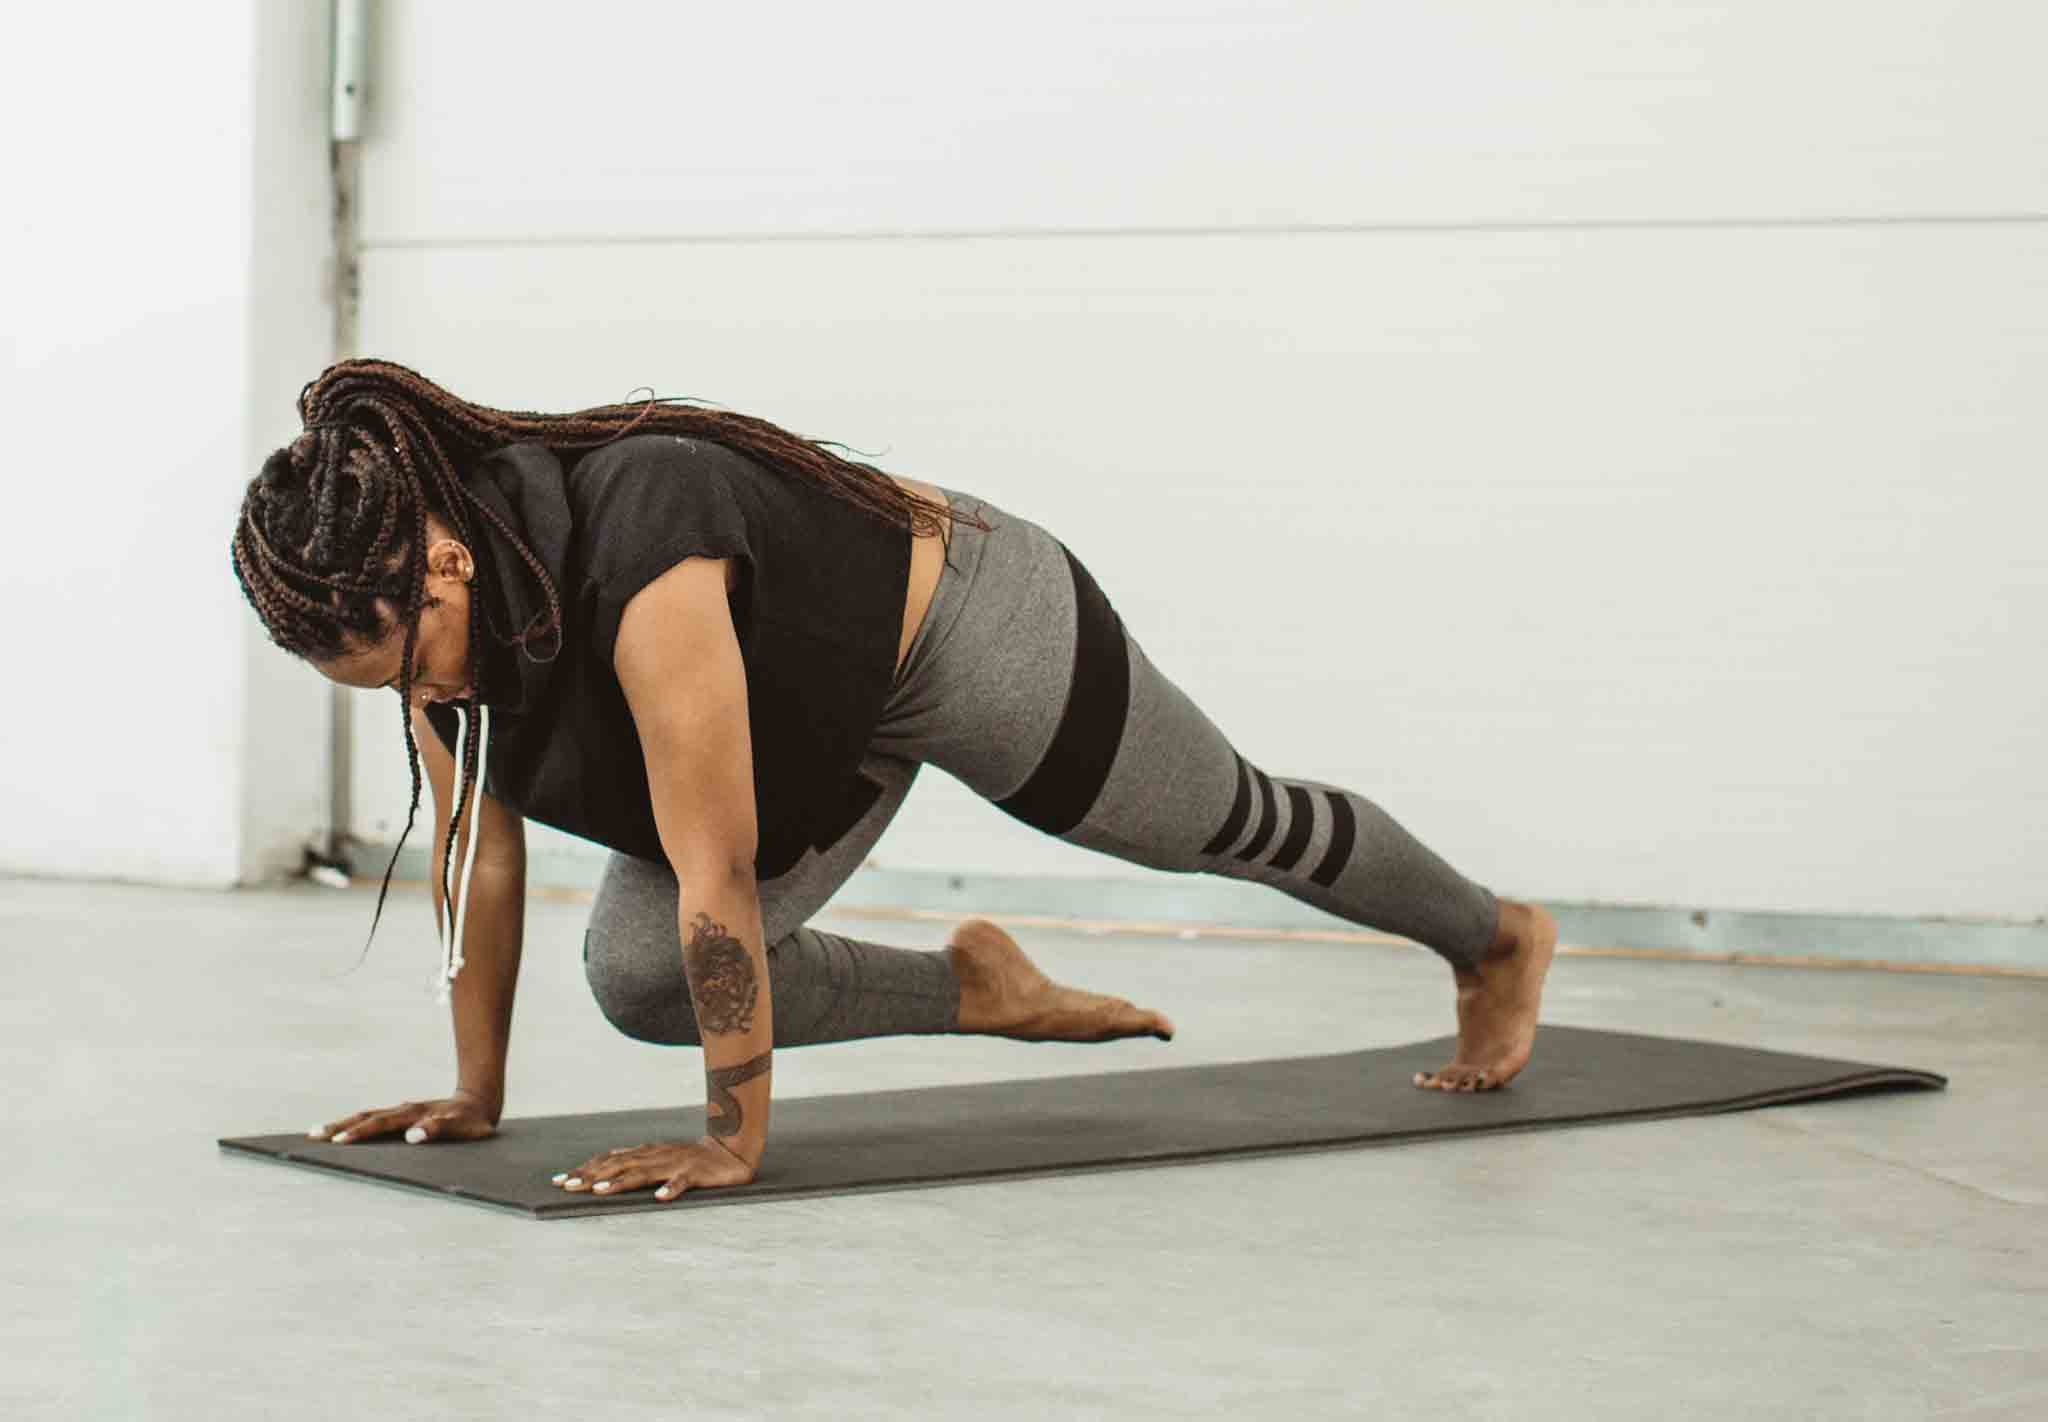 A CrossFit Coach Says This Is How to Work Your Abs More When Doing Mountain Climbers